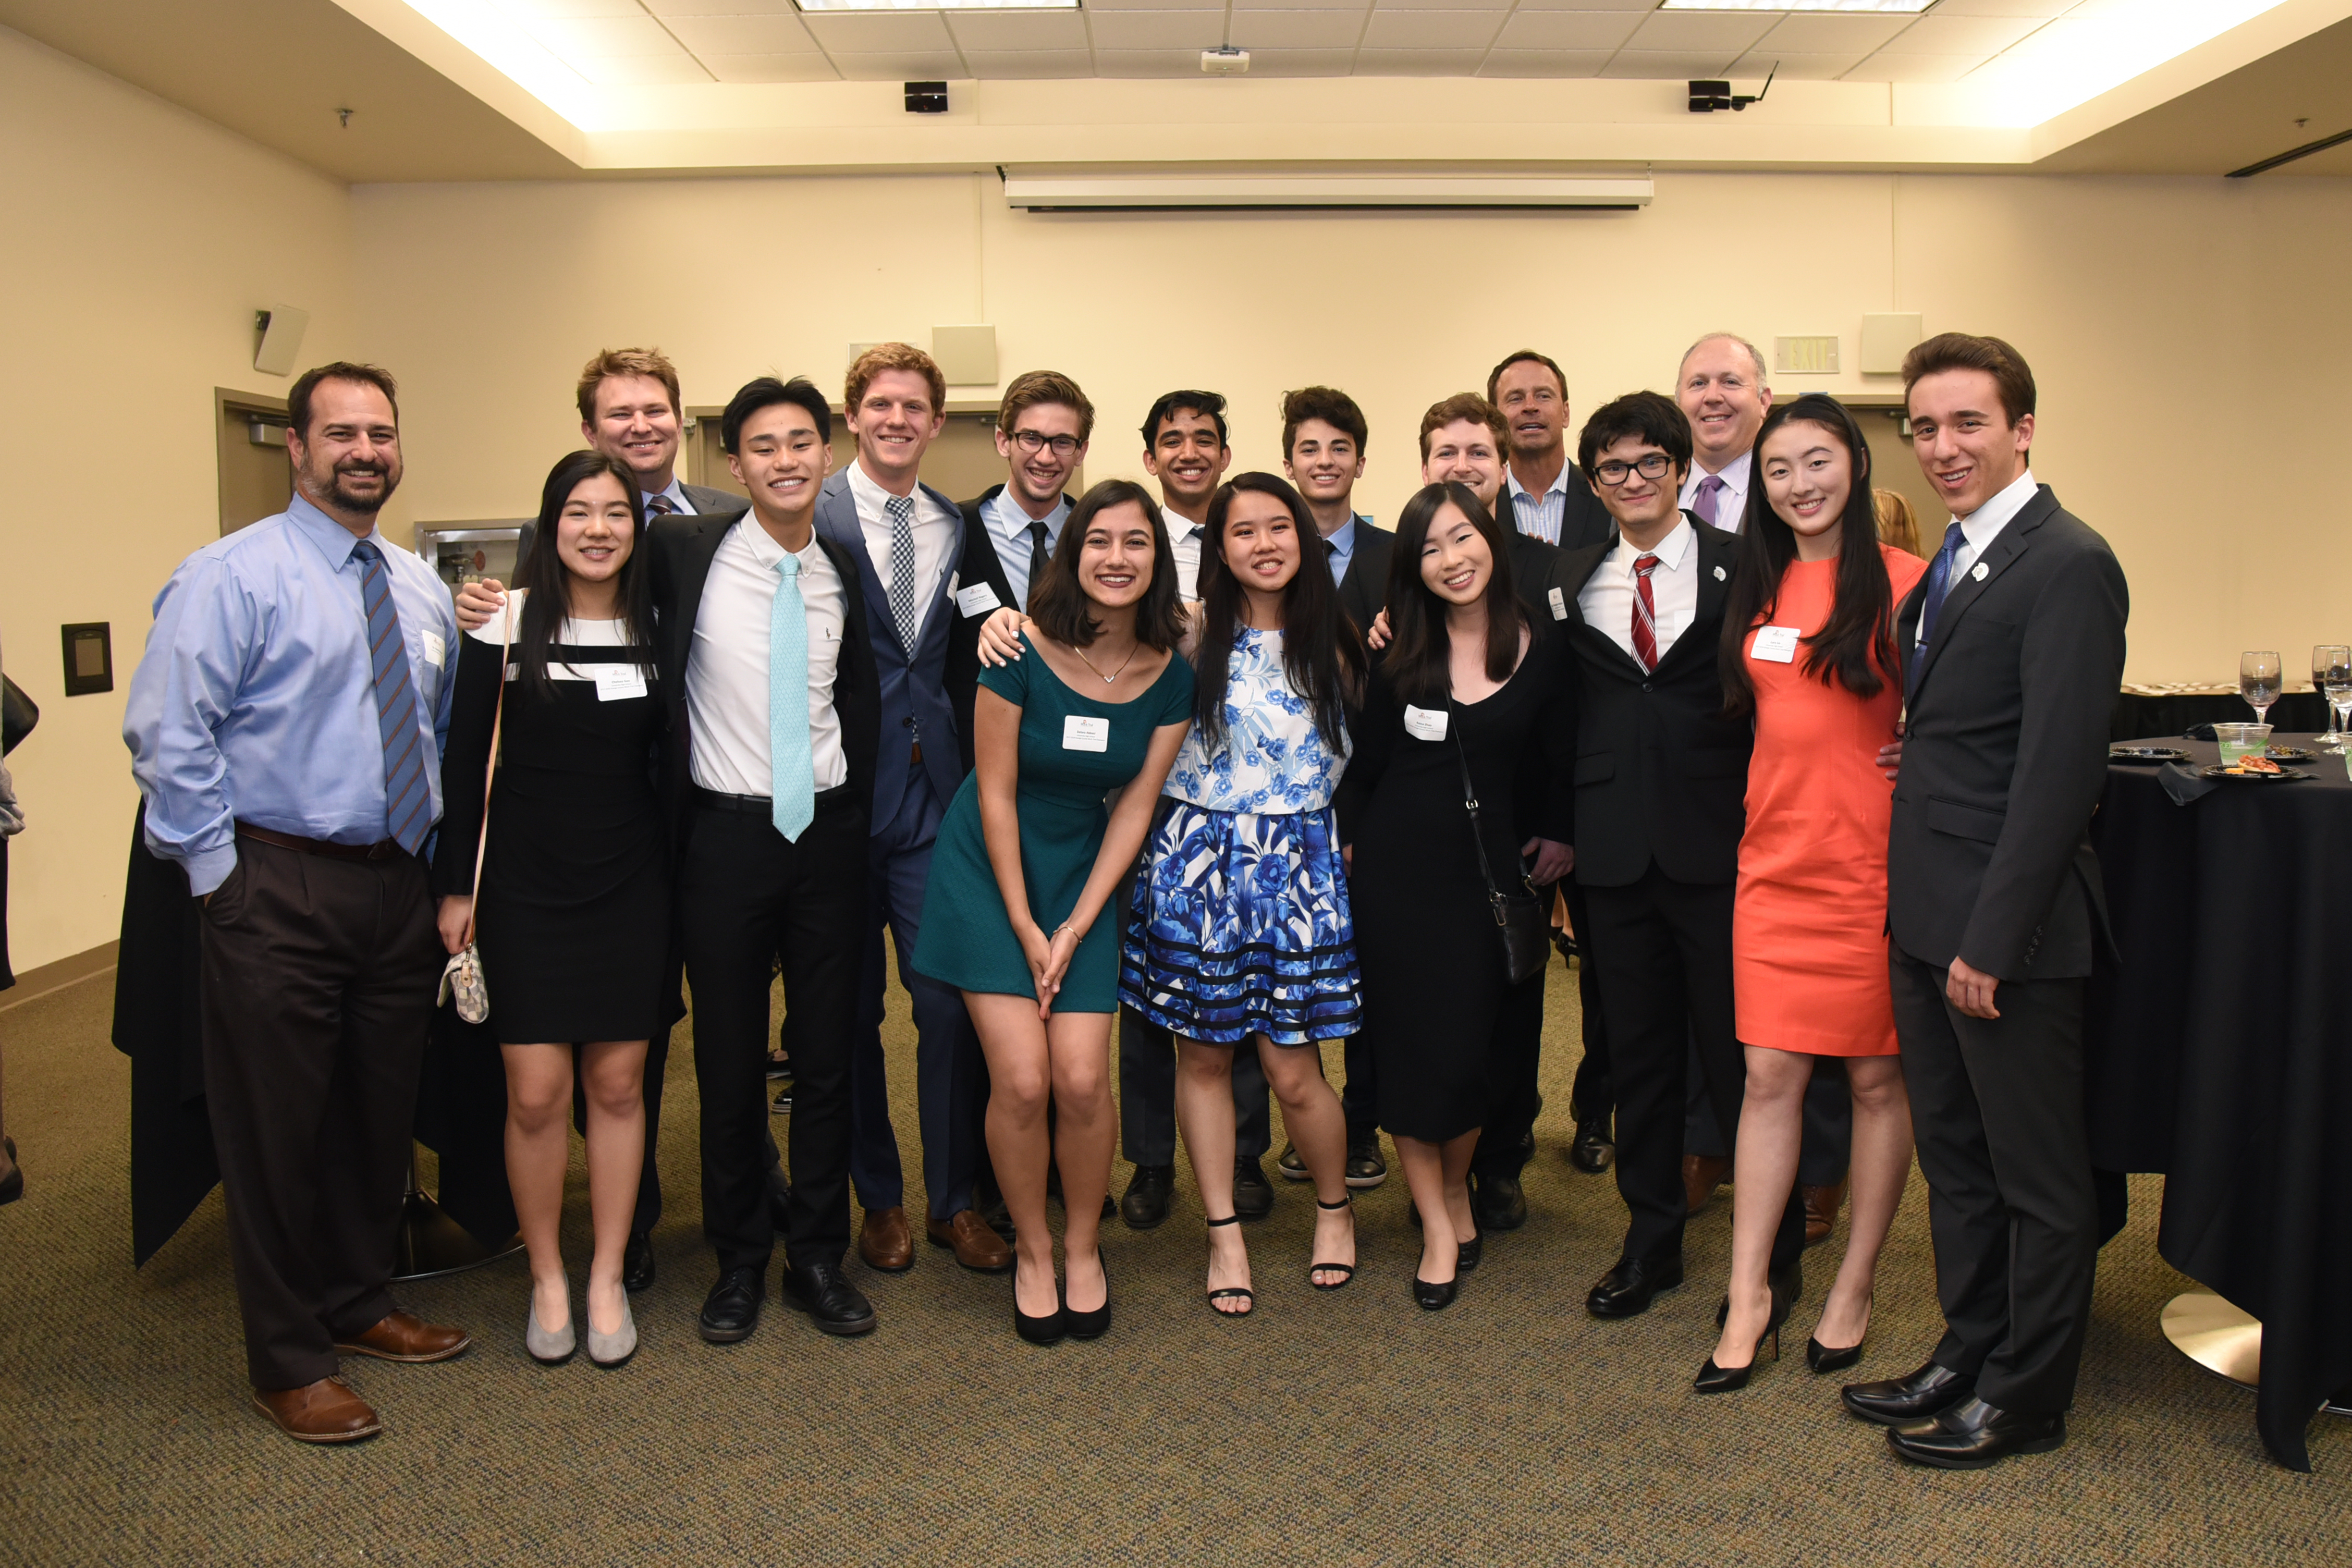 On February 8th CRF OC Held Its Annual Awards Reception Celebrating The Students And Volunteers Of Orange County High School Mock Trial Competition